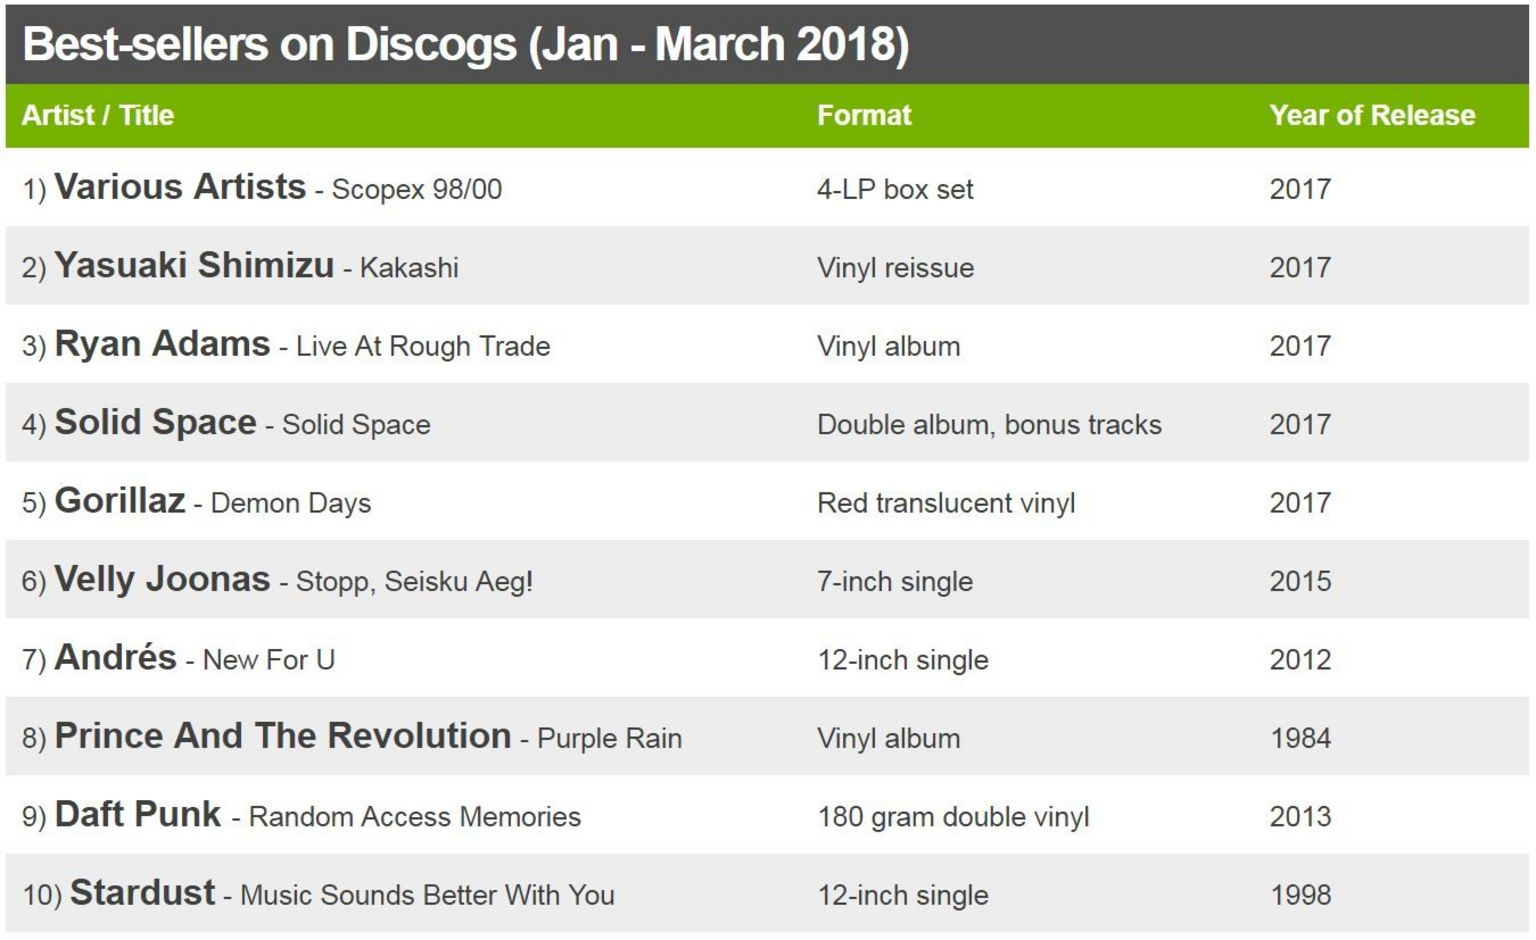 Best-sellers on Discogs